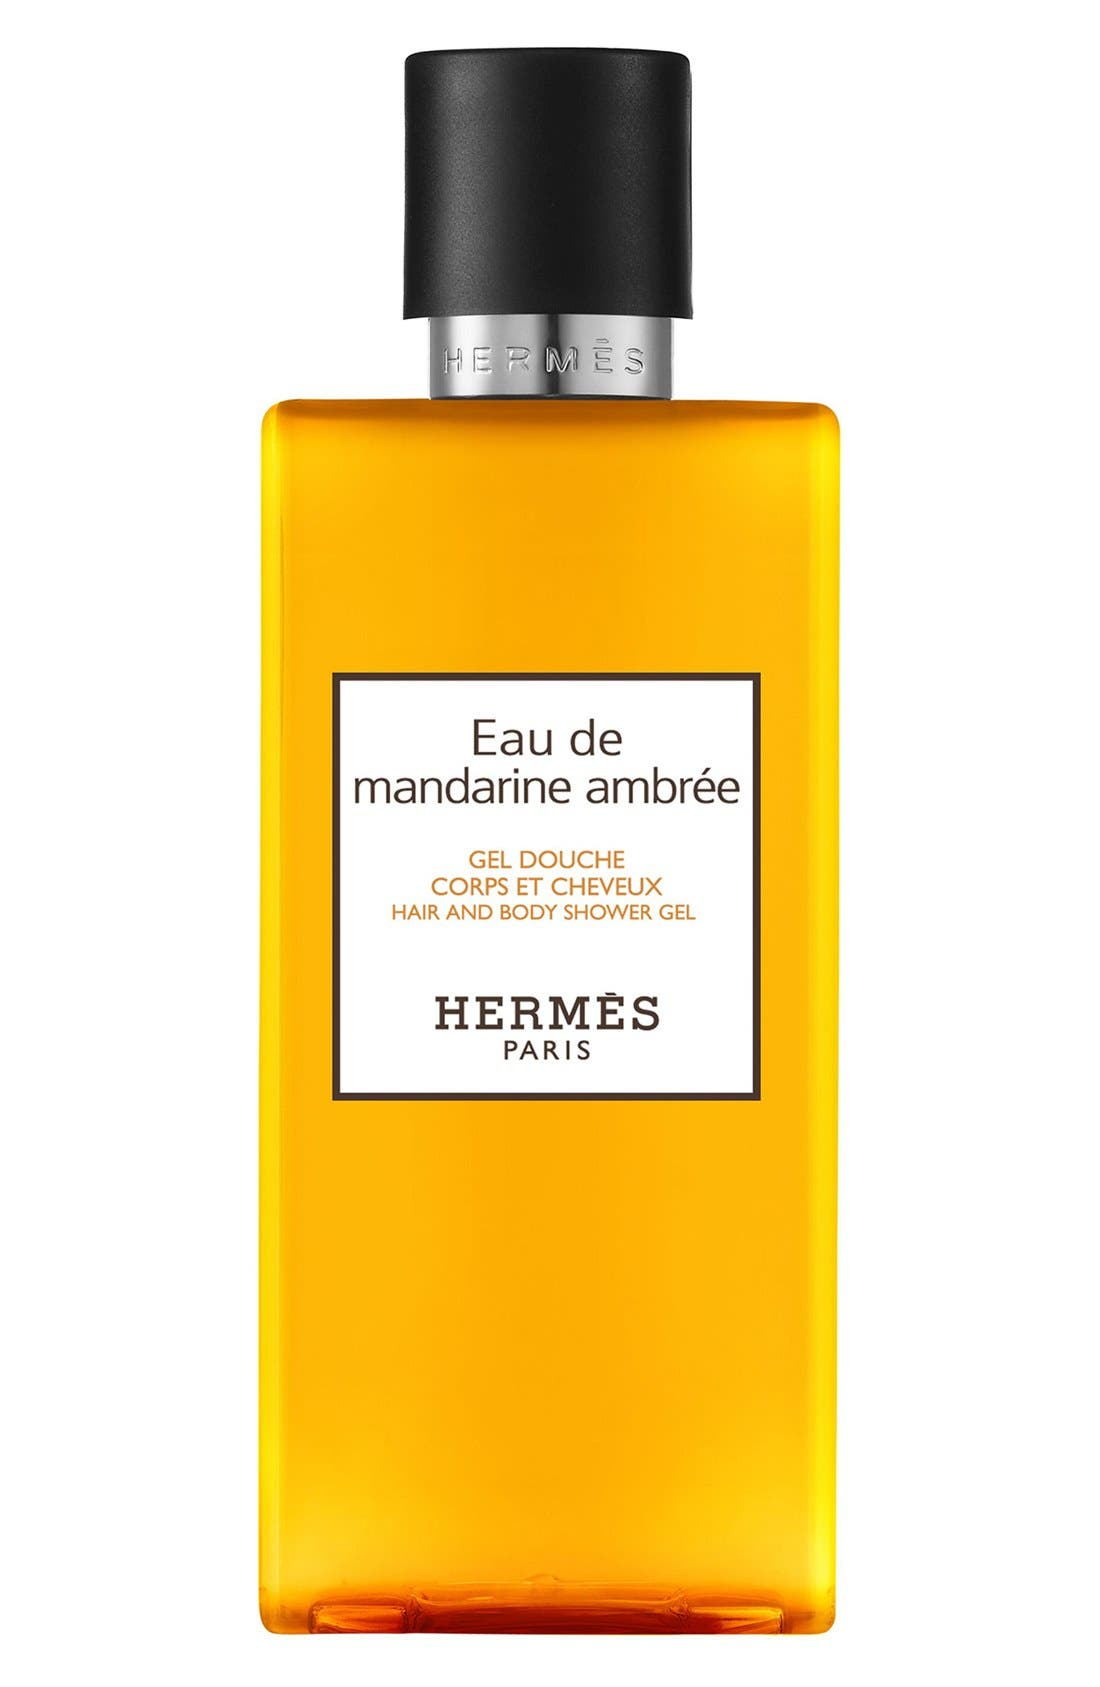 Eau de Mandarine Ambrée - Hair and body shower gel,                             Main thumbnail 1, color,                             000